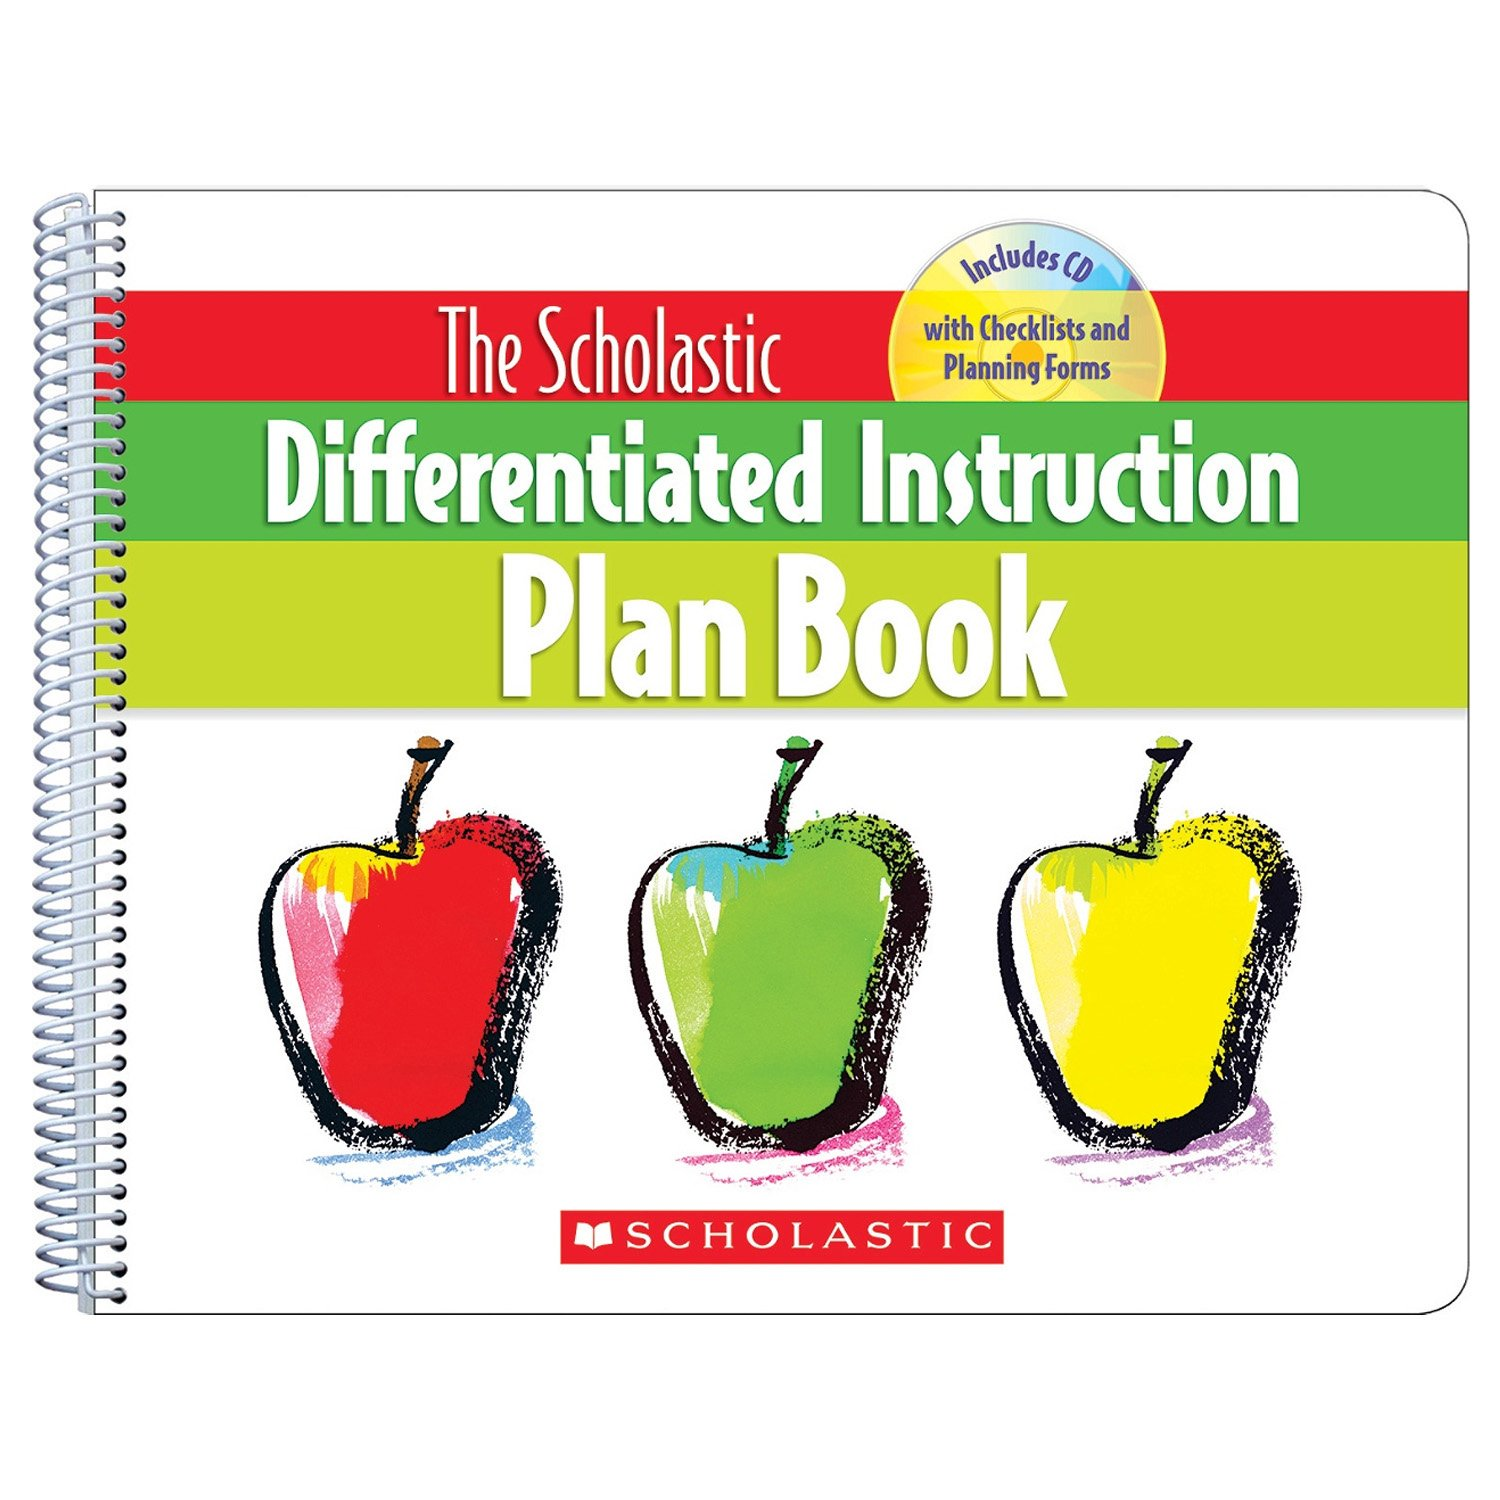 The Scholastic Differentiated Instruction Plan Book Cindy